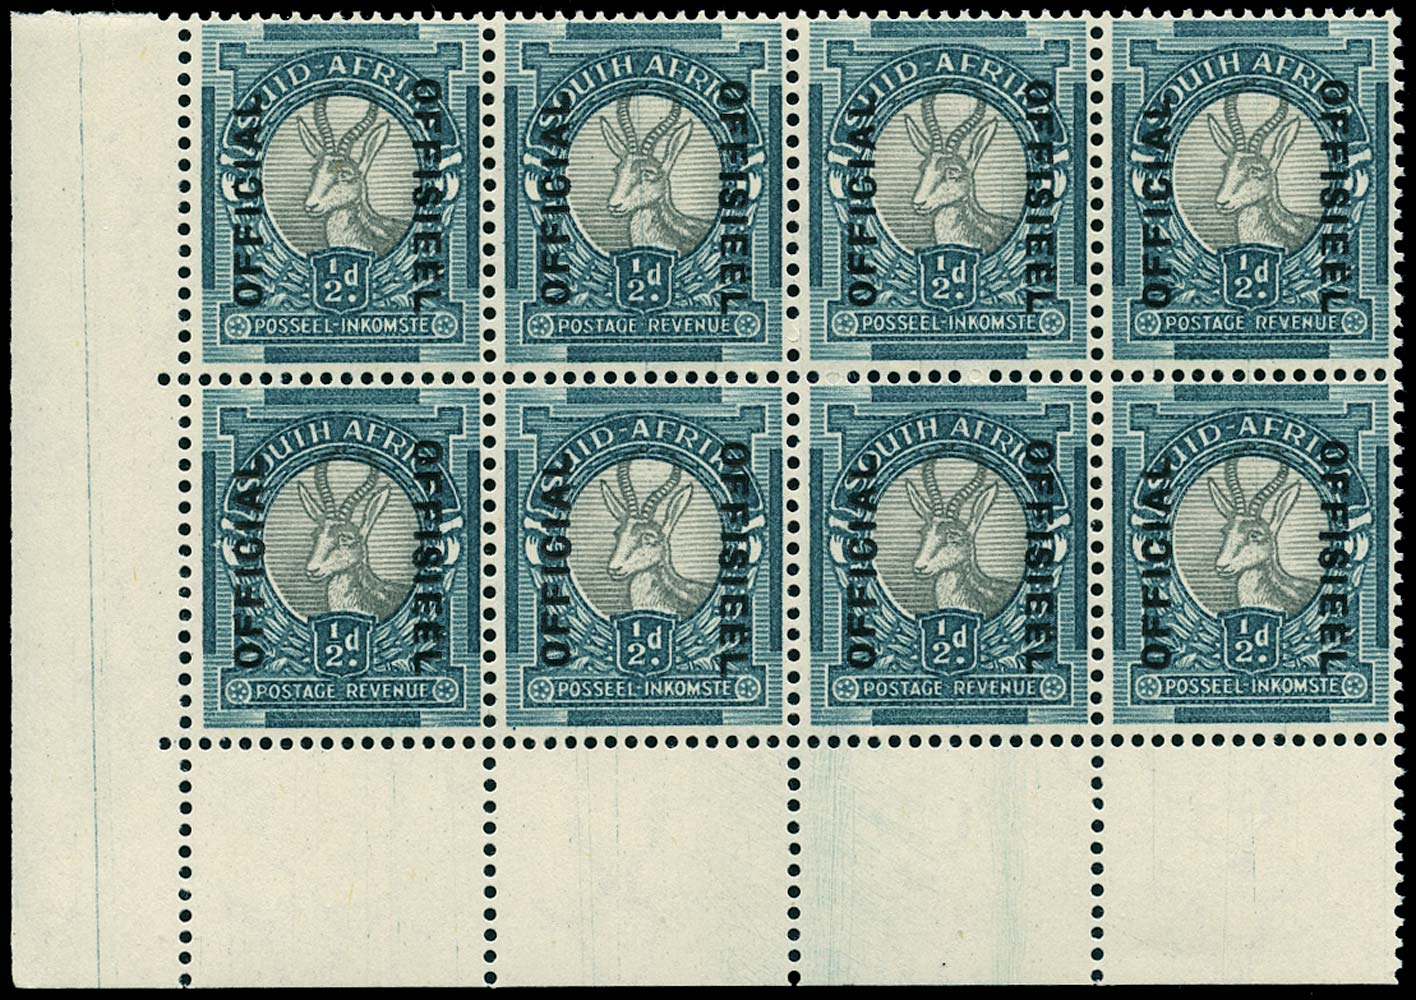 SOUTH AFRICA 1944  SGO32 Official ½d grey and blue-green type O5 overprint